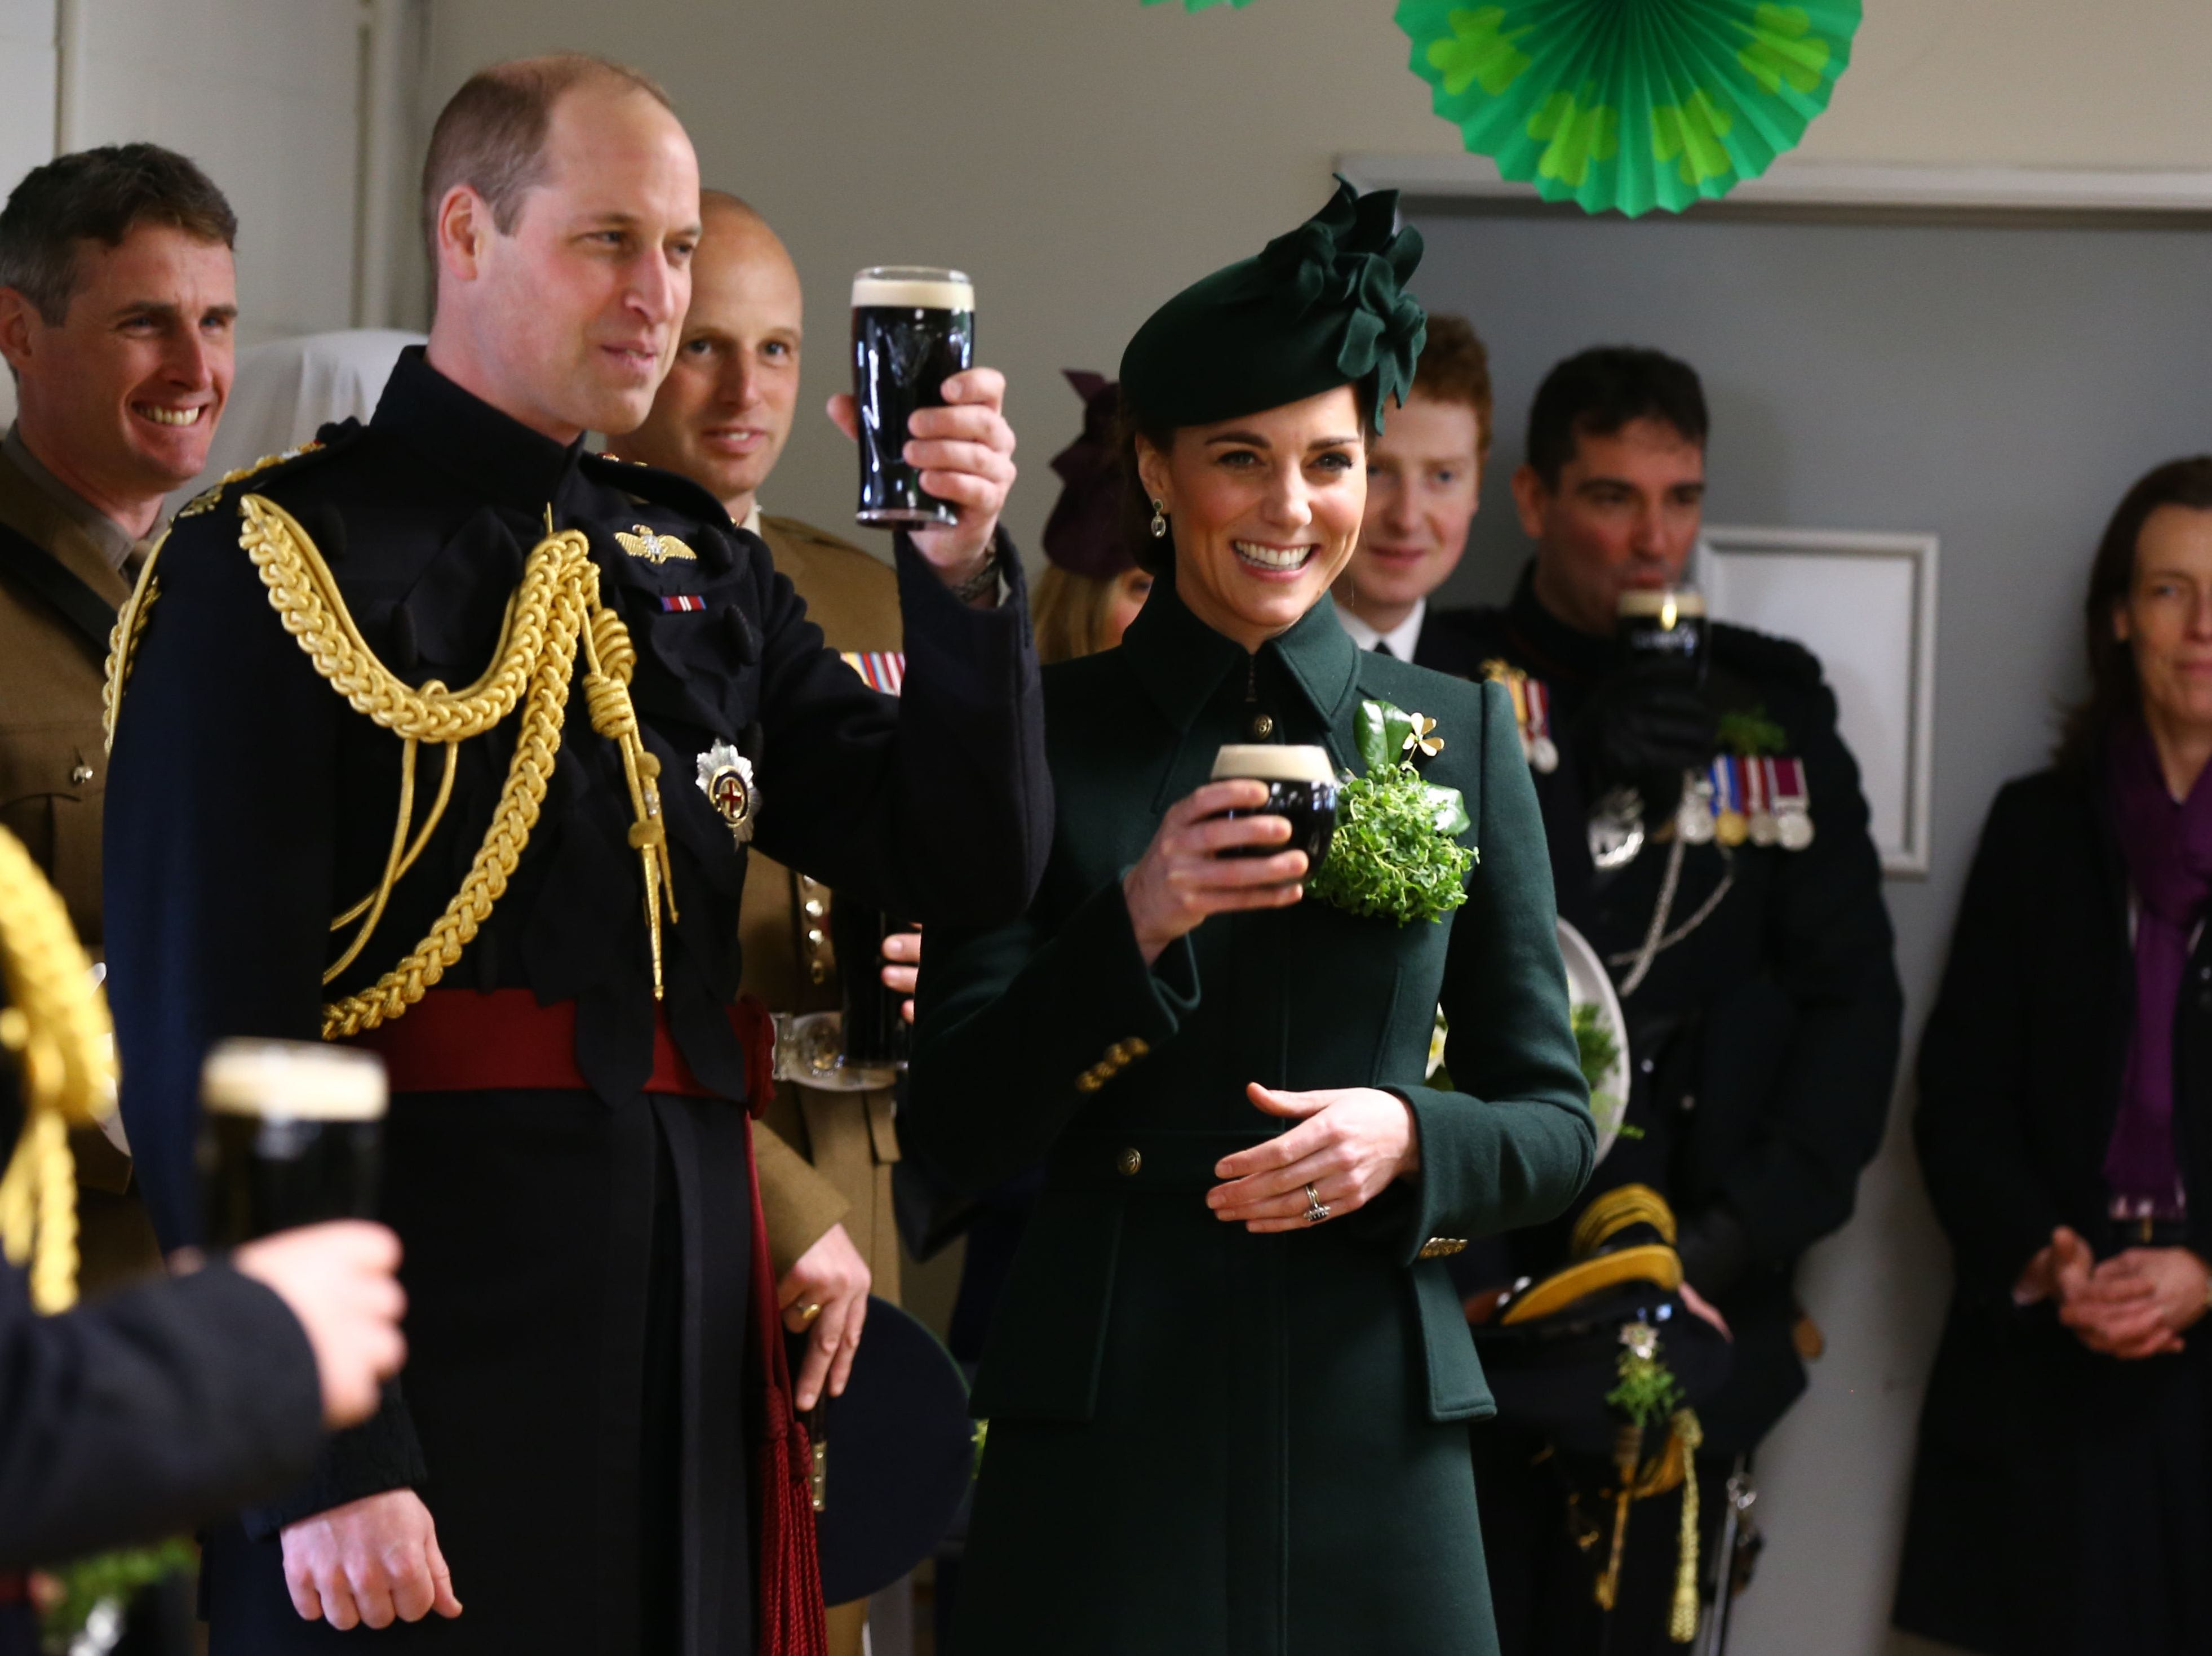 Britain's Prince William, Duke of Cambridge and Britain's Catherine, Duchess of Cambridge enjoy a pint of Guinness with officers and guardsmen of the 1st Battalion Irish Guards after the St Patrick's Day parade, at Cavalry Barracks in Hounslow, west London, on March 17, 2019.